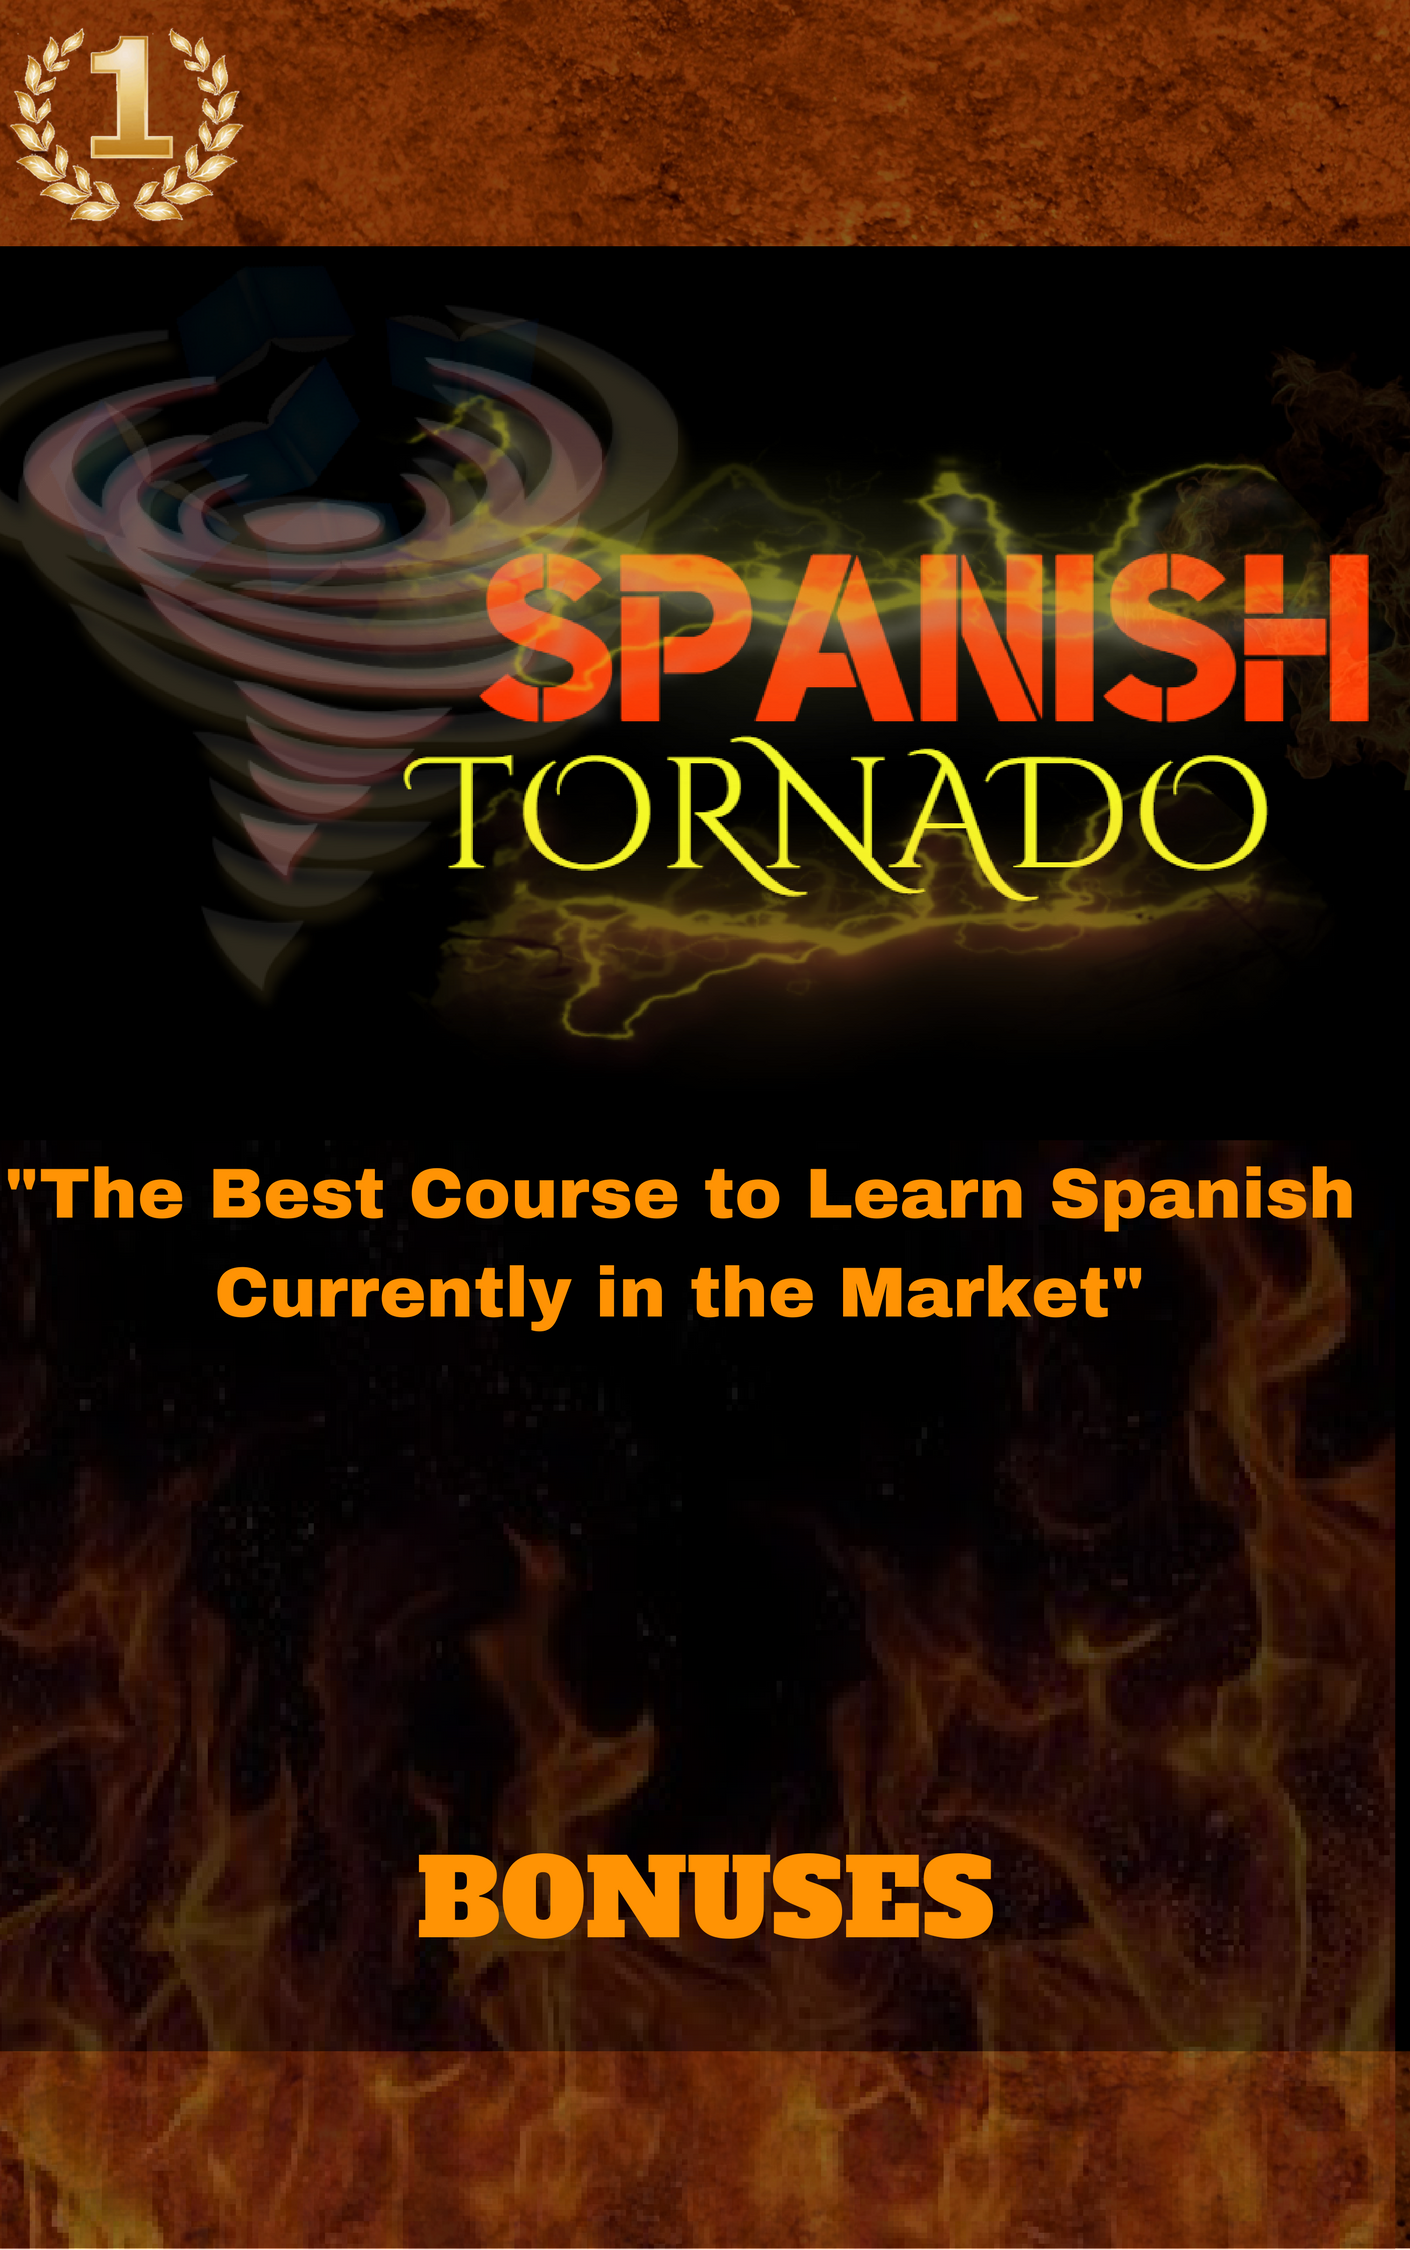 Spanish Tornado - The Best Course to Learn Spanish For